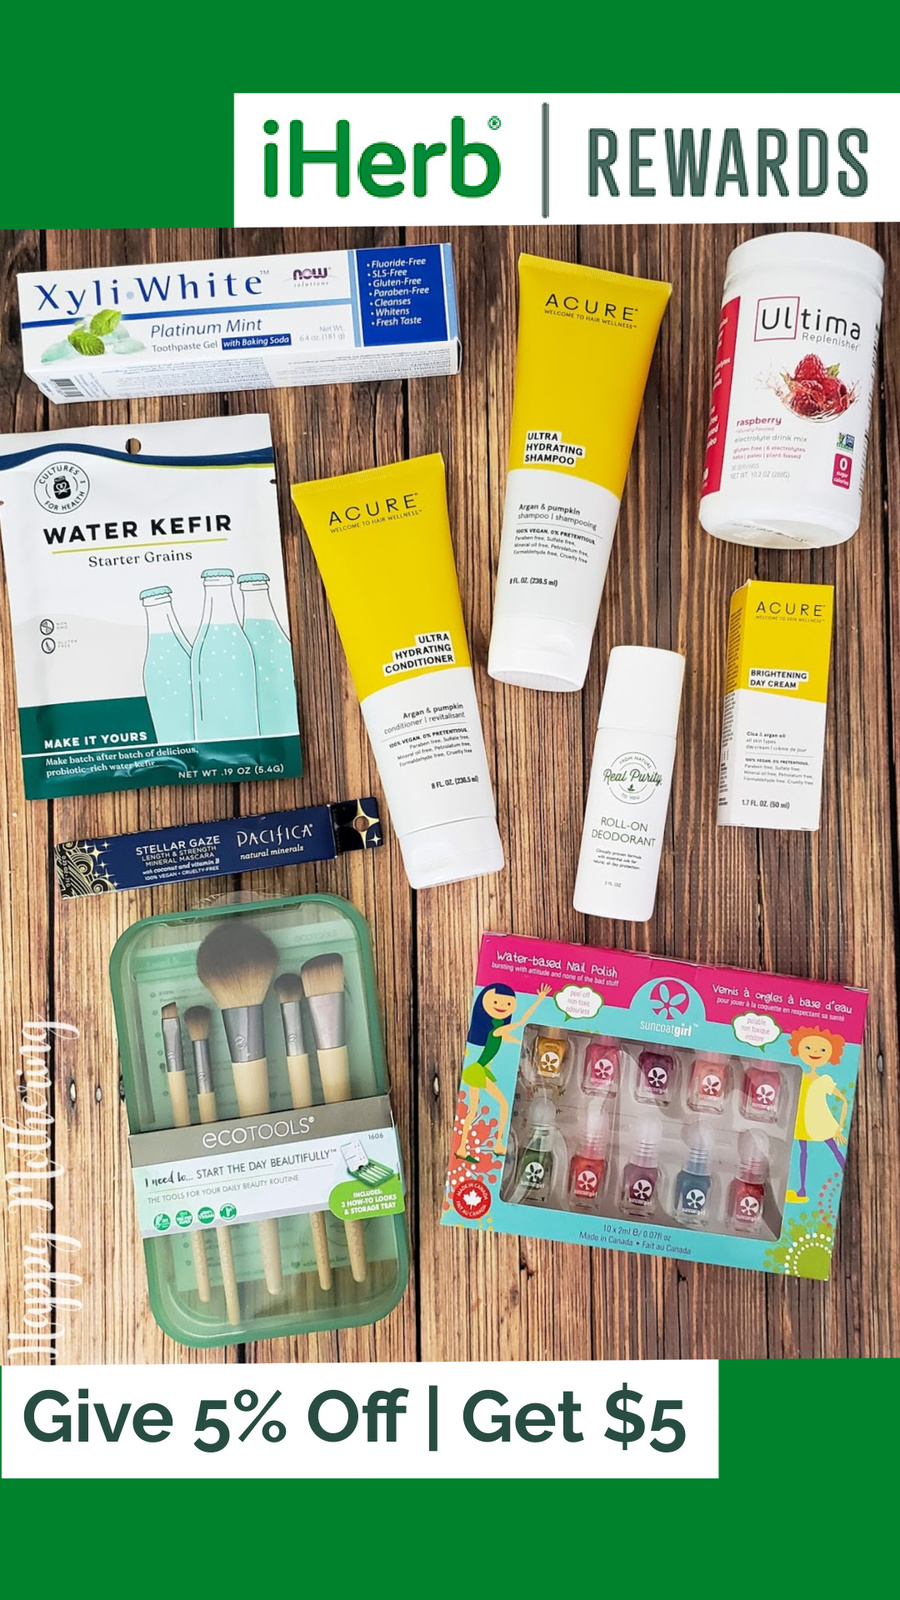 """Overhead view of products purchased on the iHerb website with iHerb rewards logo and the words """"Give 5% off, Get $5"""" printed on a green background."""